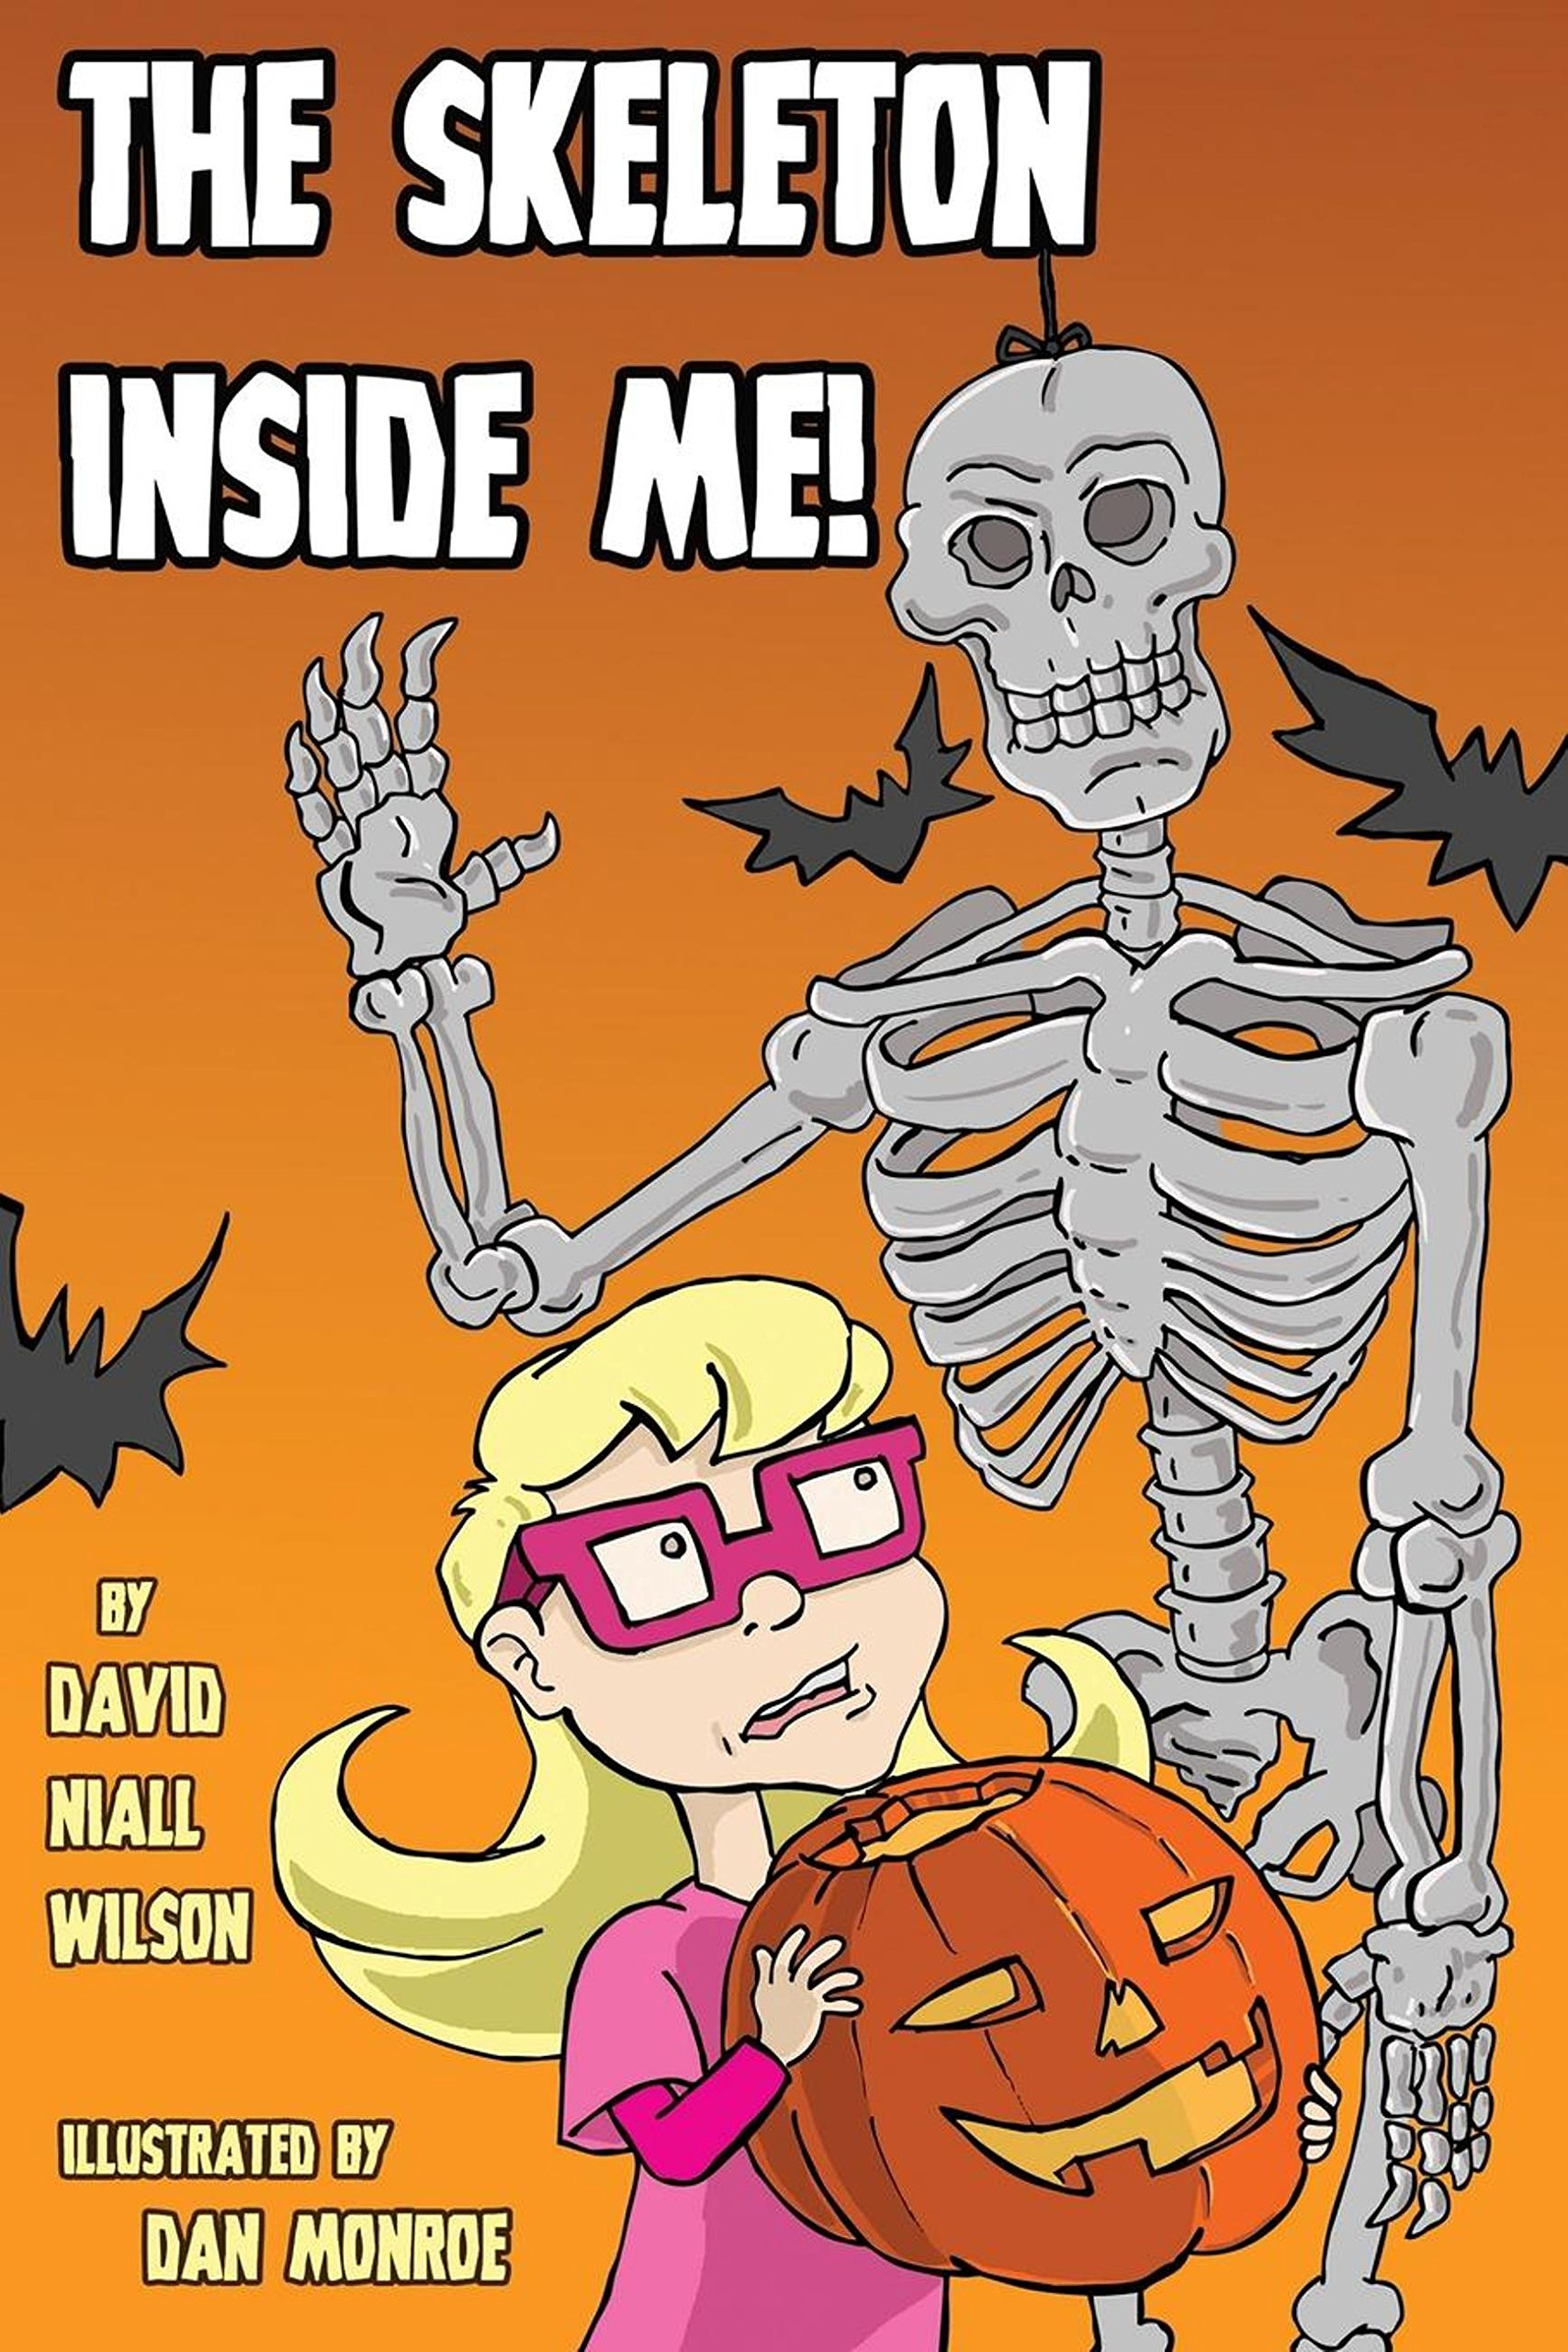 The Skeleton Inside Me! by Crossroad Press